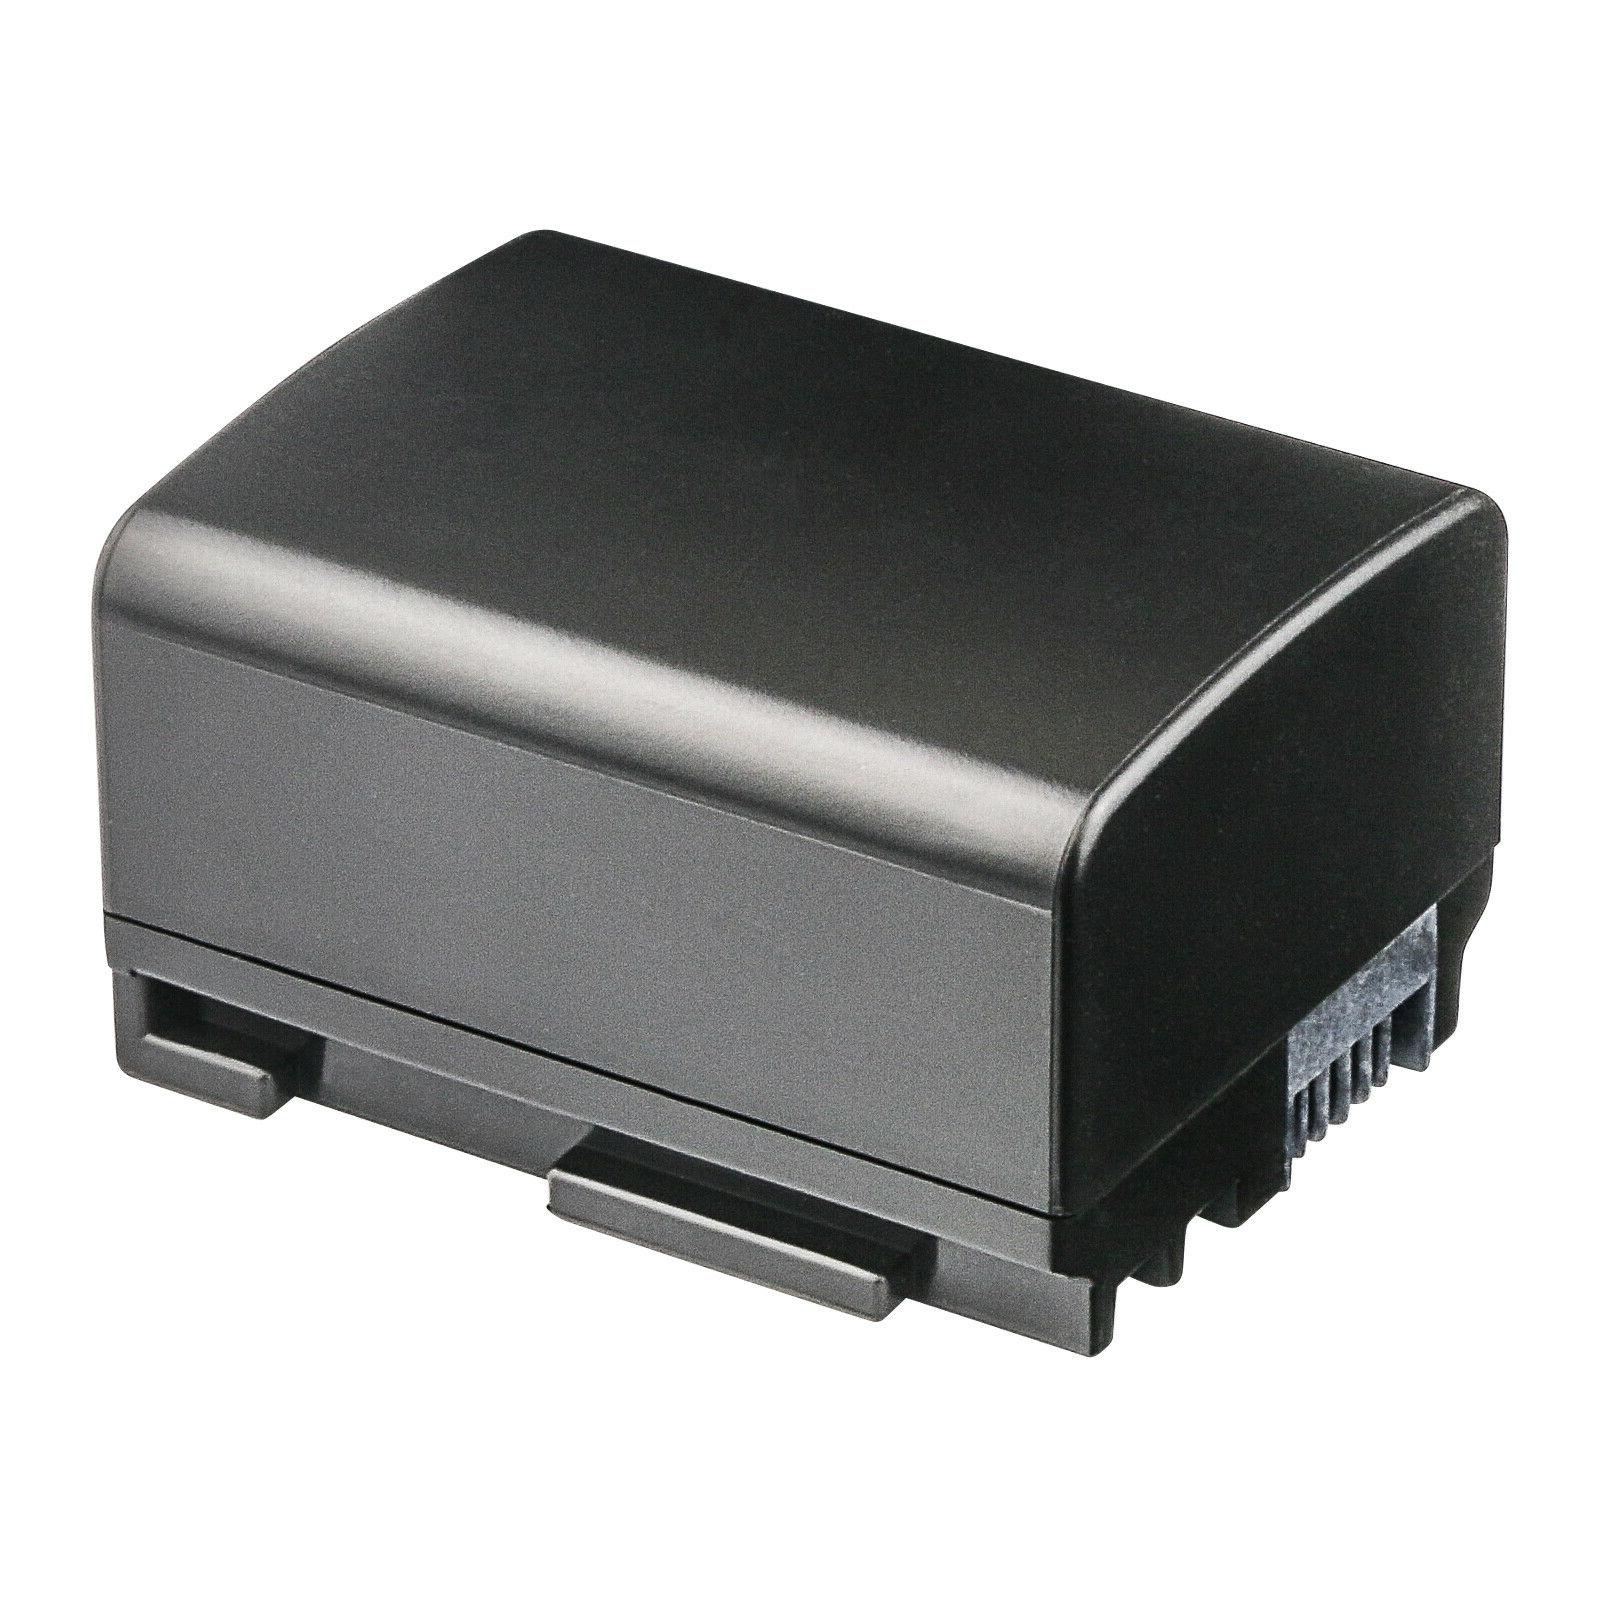 Kastar Wall Charger for BP-808 CG-800 & Canon FS300 Camcorder